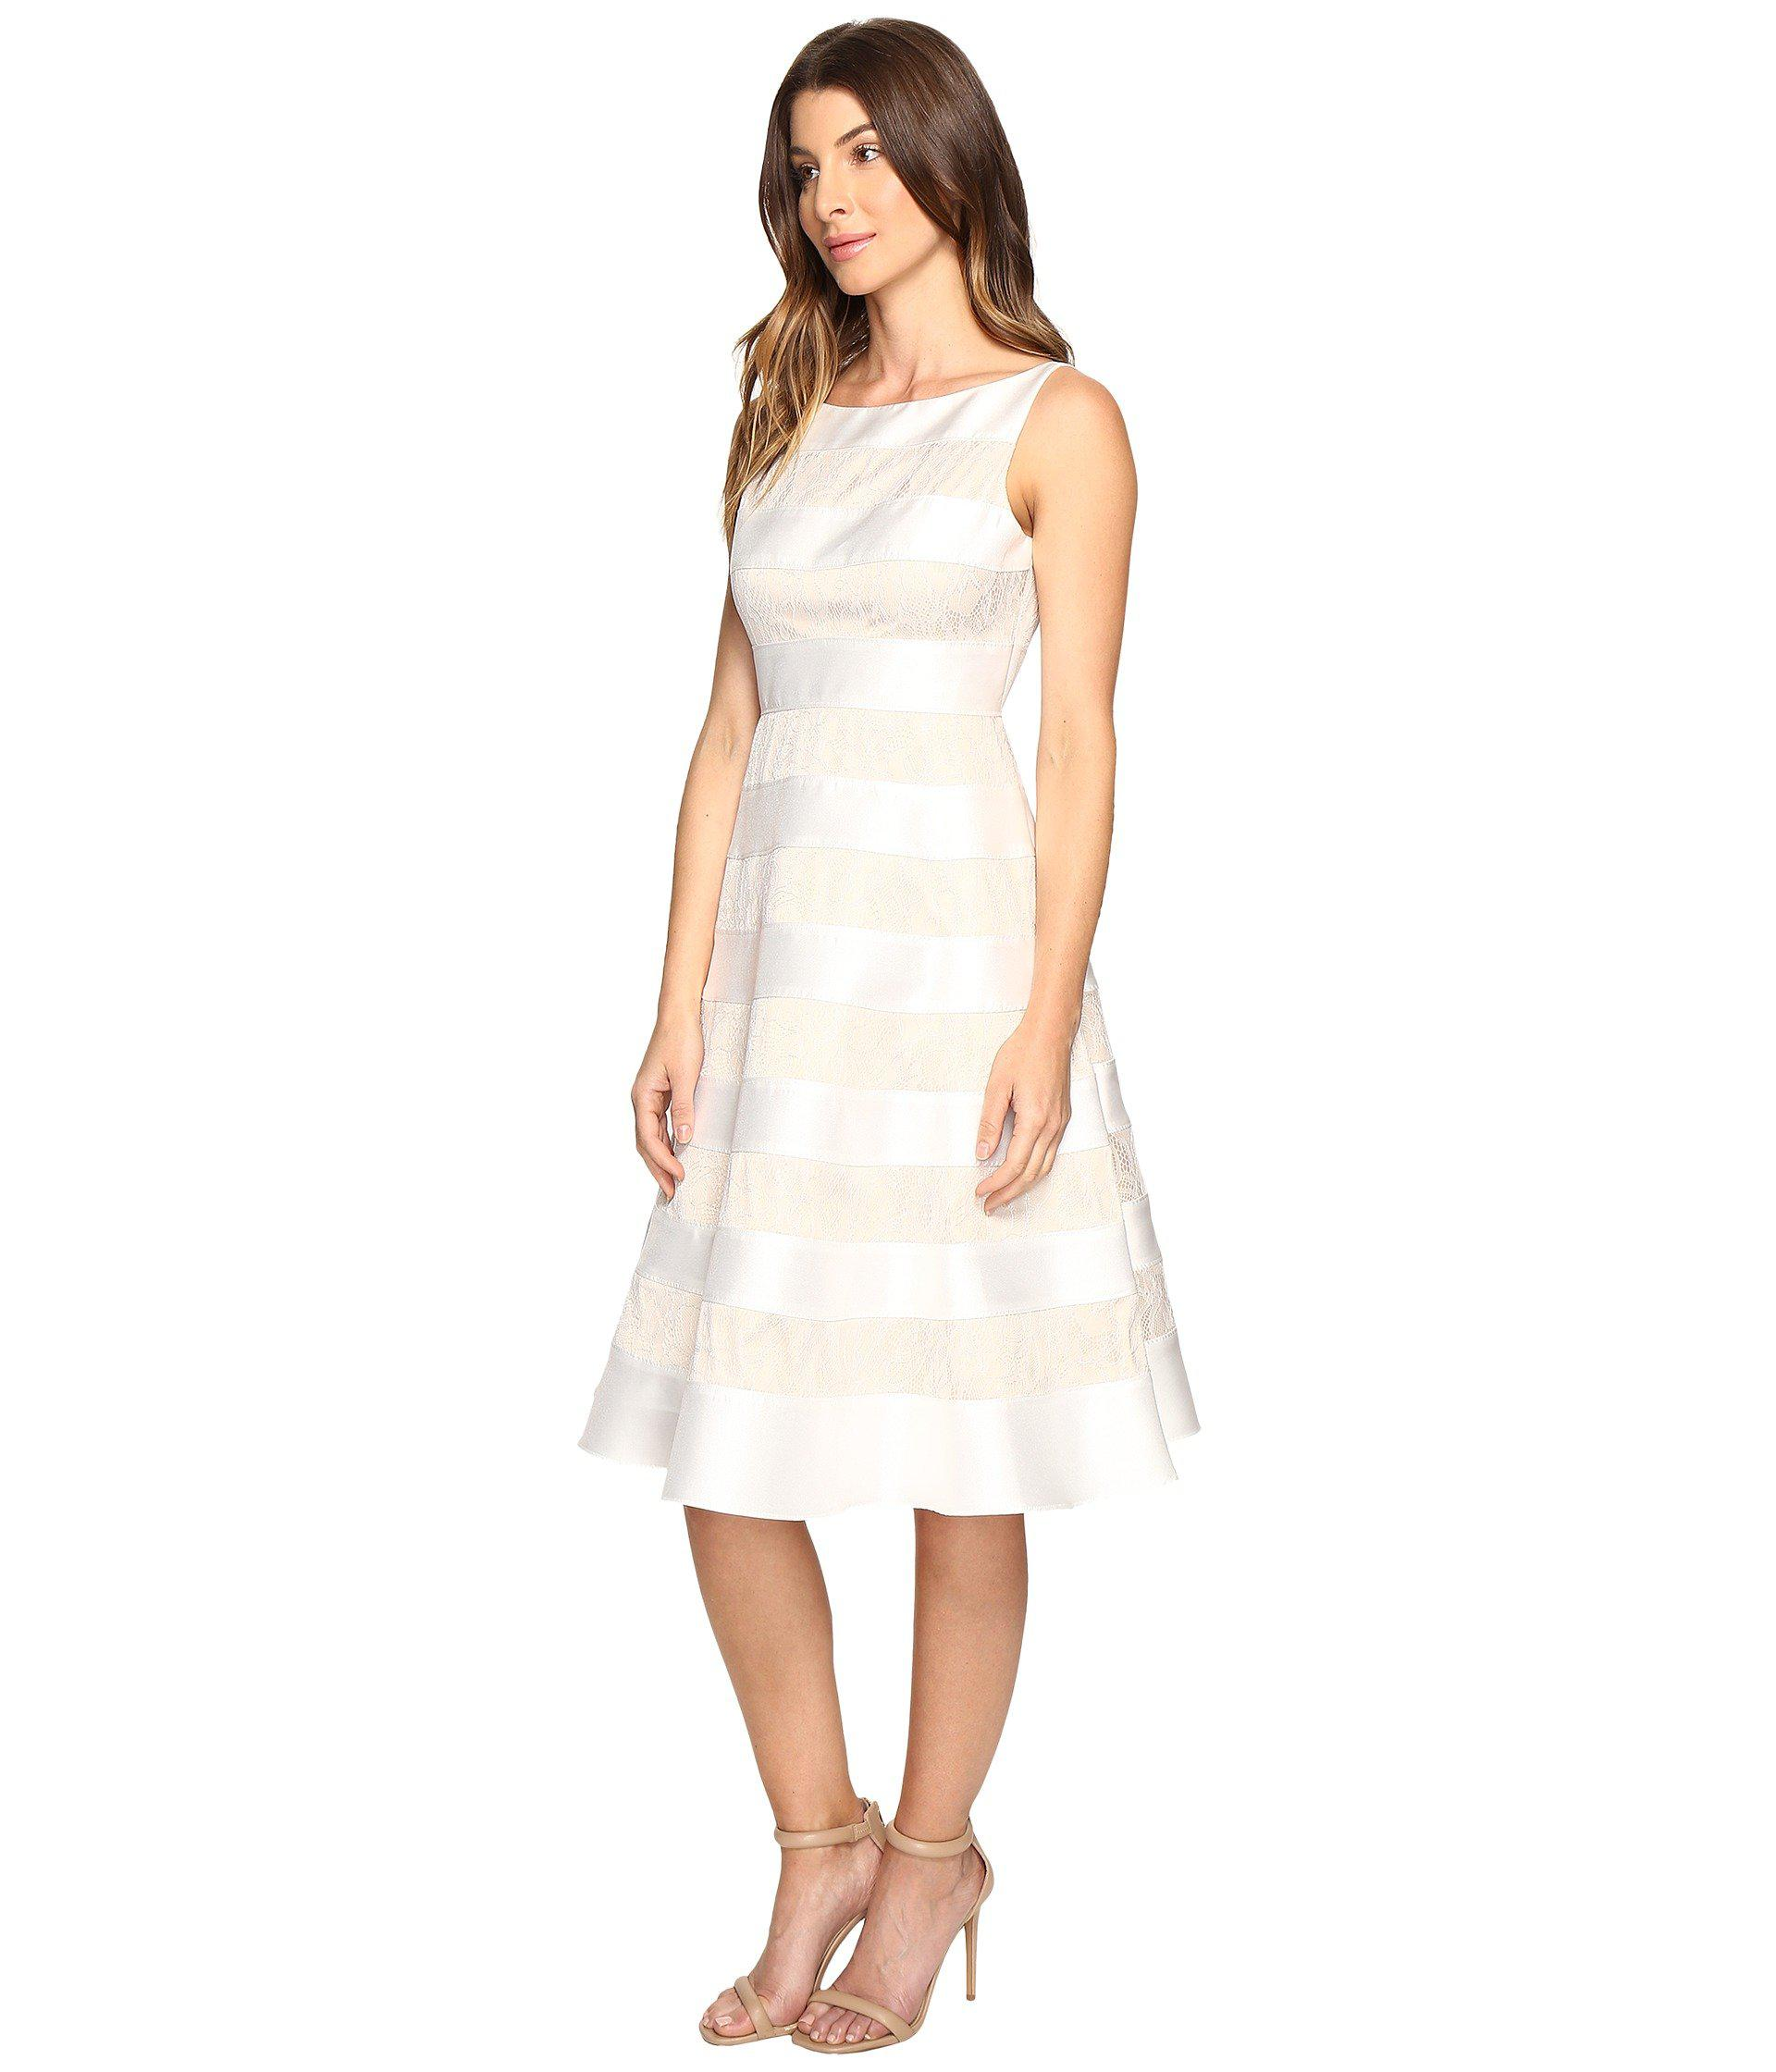 Adrianna Papell Striped Lace Amp Mikado Cocktail Dress In